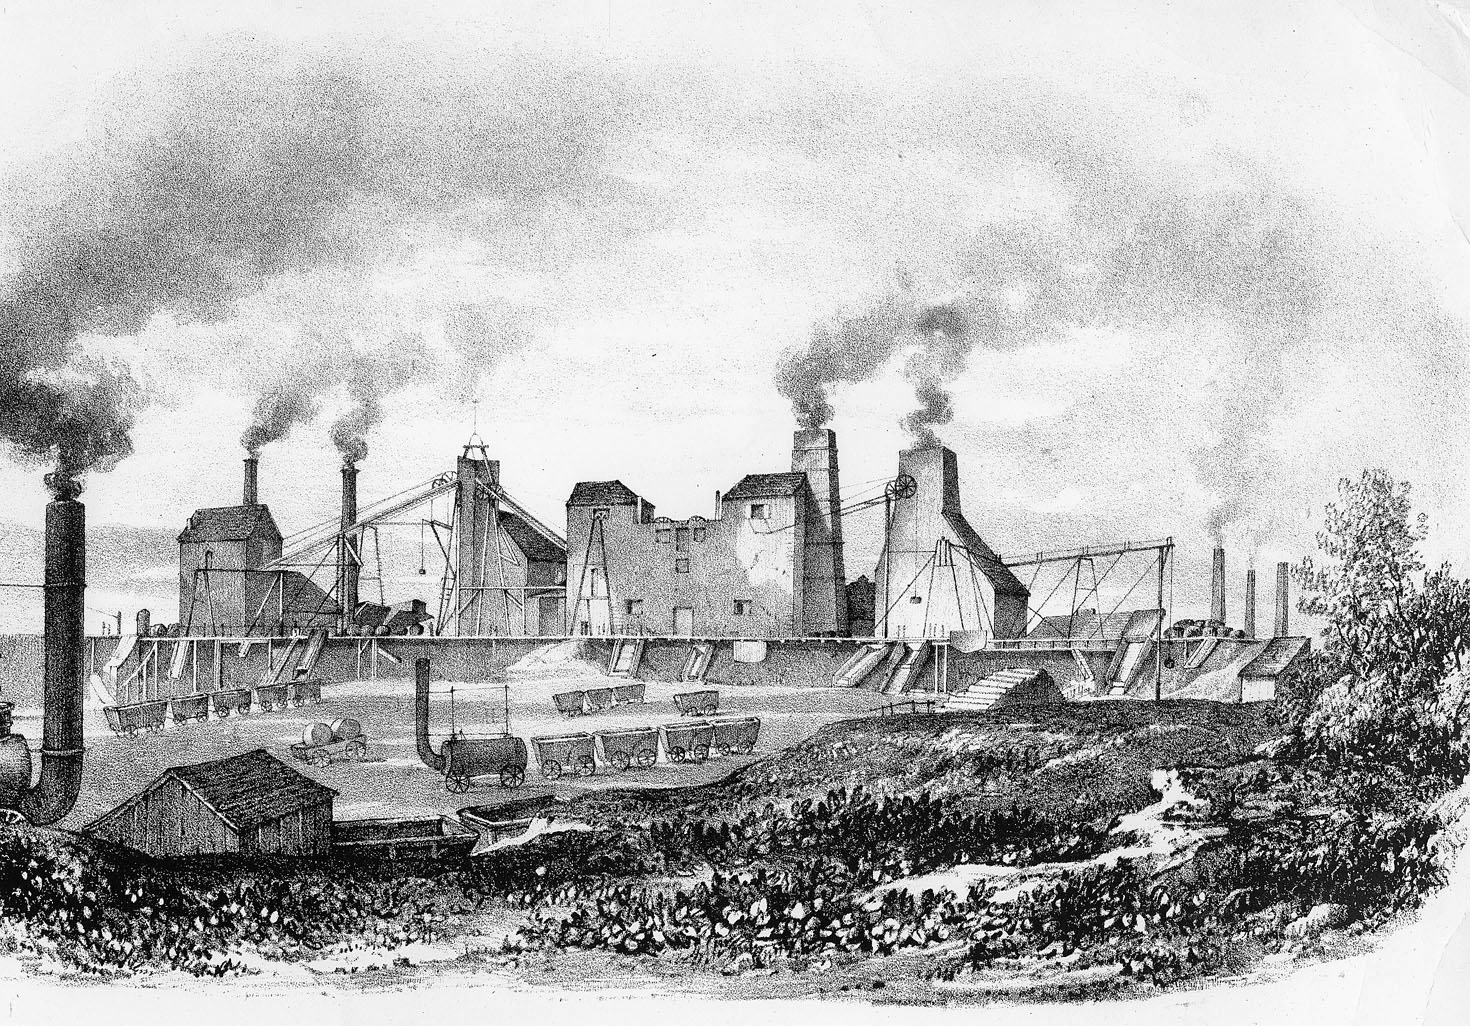 Hetton Colliery coal mine. Steam engines running on coal were utilized in the coal production. Image: The Art Archive, Alamy Stock Photo.